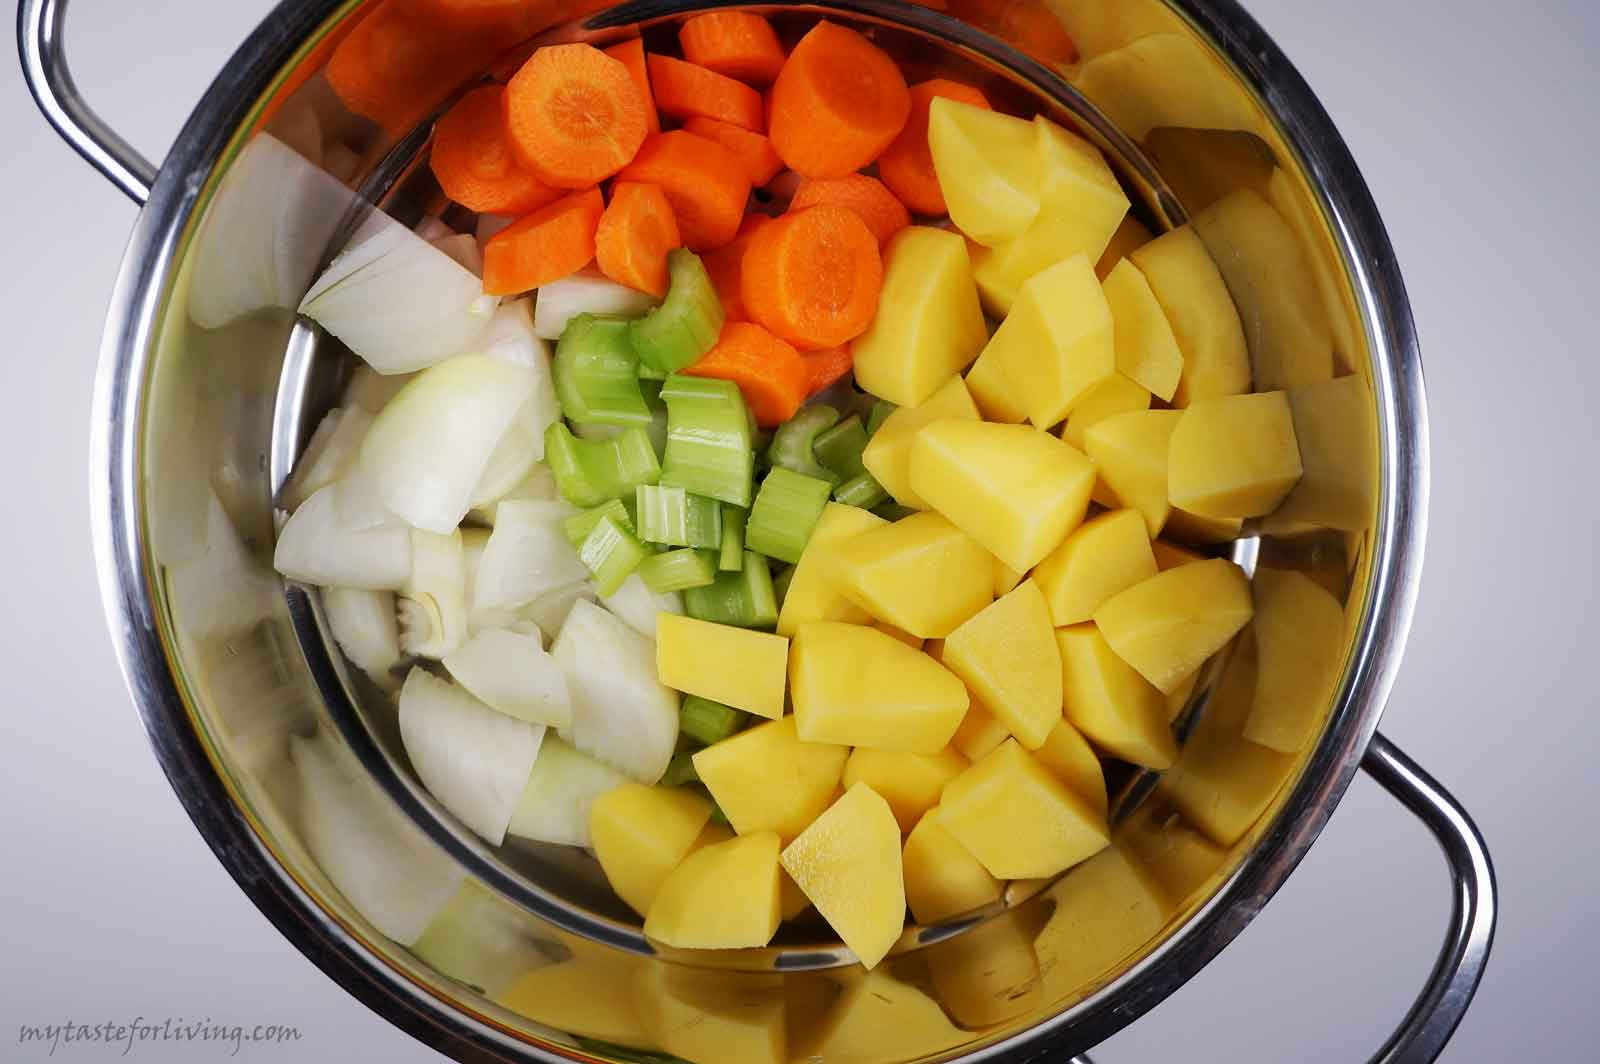 Delicious and fragrant cream soup prepared with roasted garlic and boiled vegetables - onion, potatoes, carrots and celery, suitable for vegans.